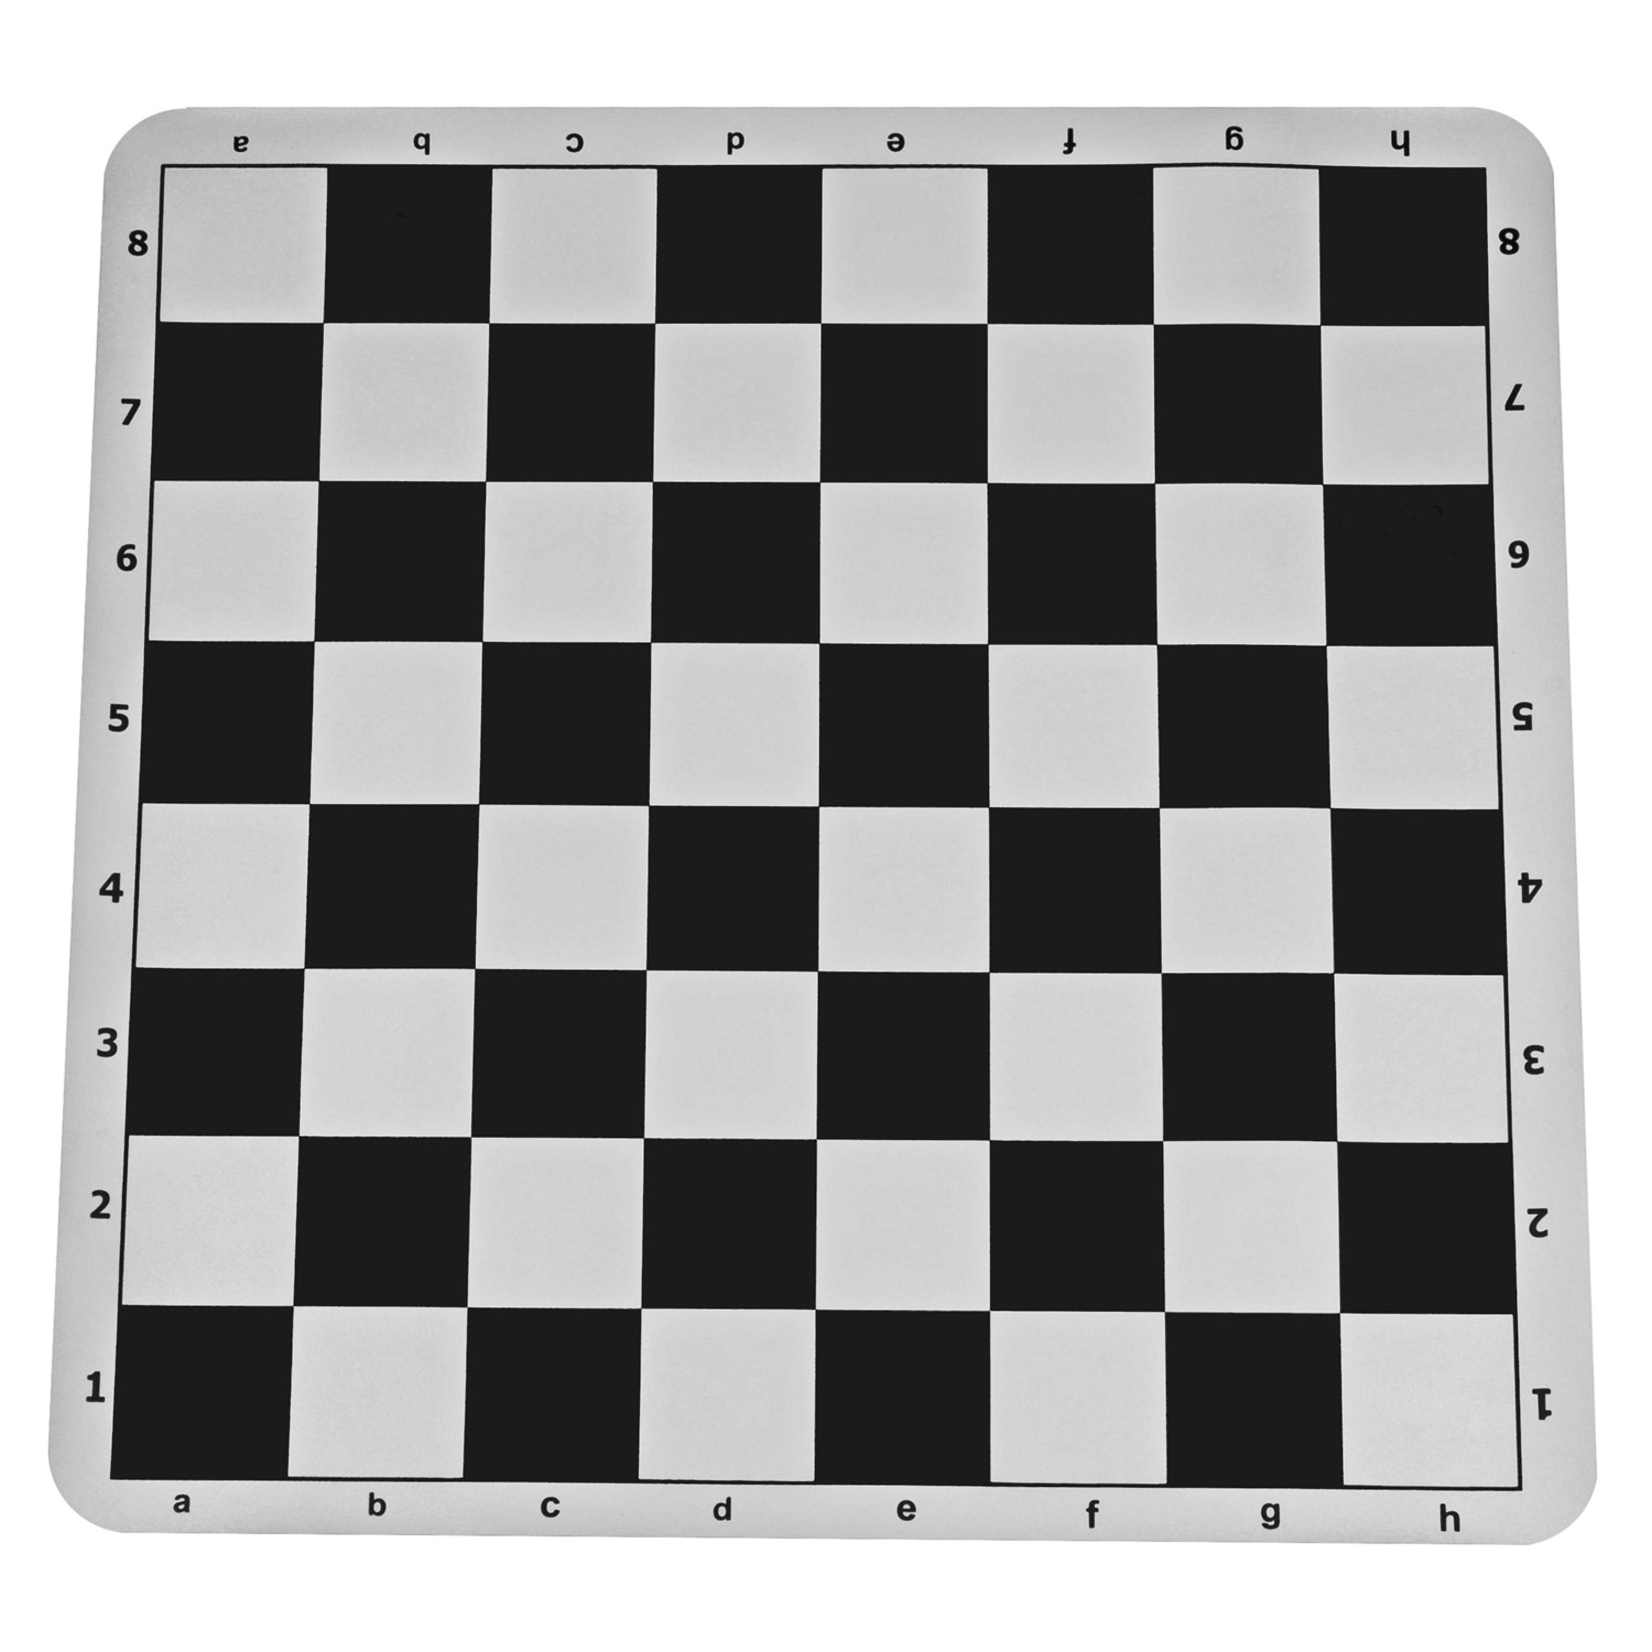 Wood Expressions Chess Board: Black Silicone (Wood Expressions)